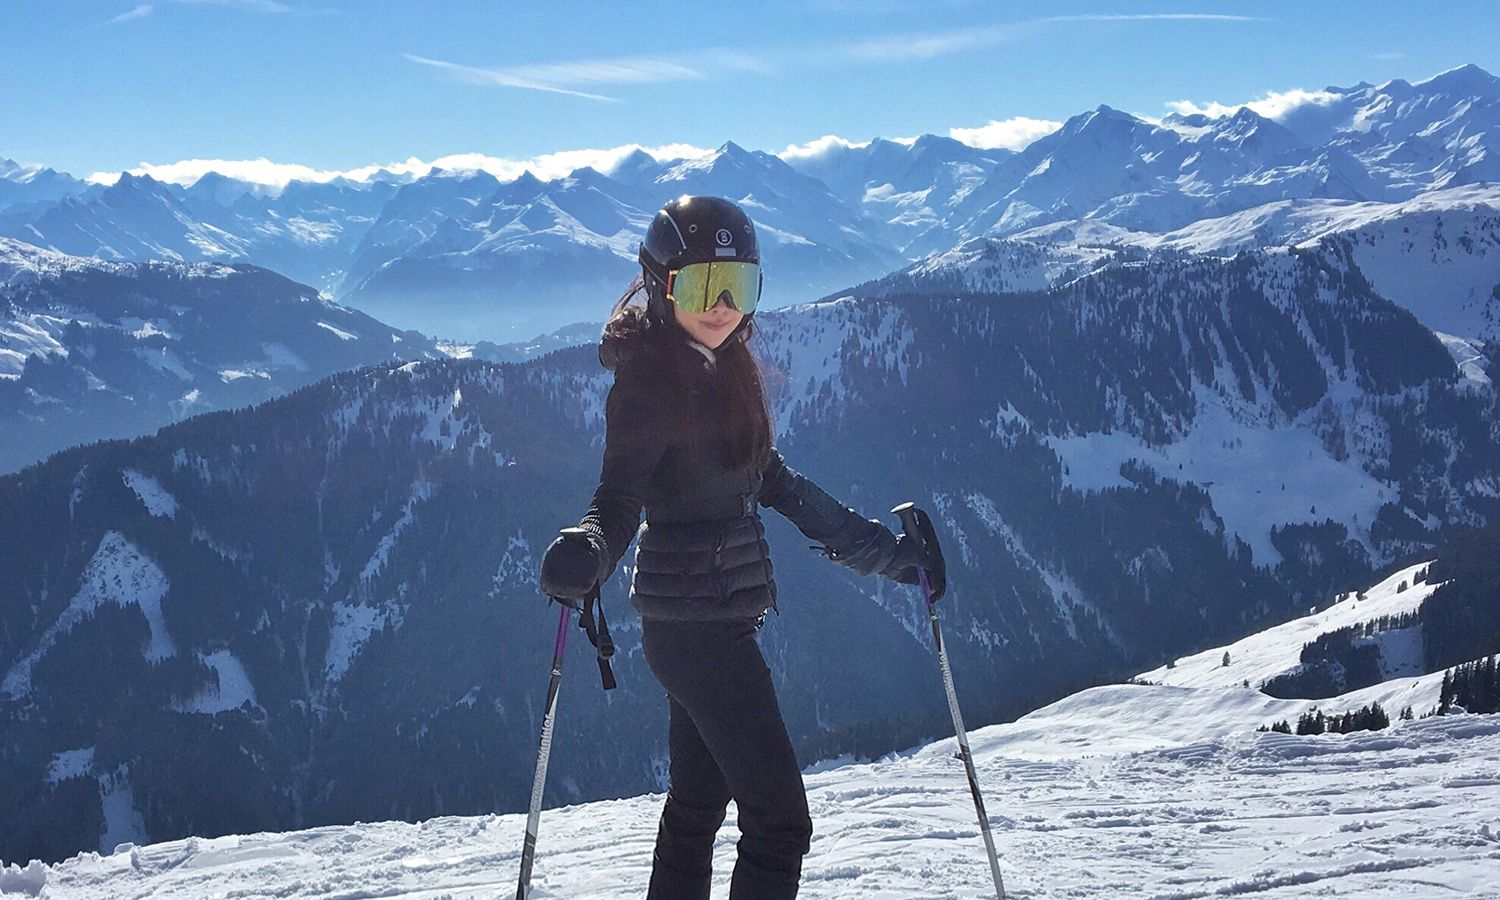 Ski Fashion: How To Look Stylish on the Slopes